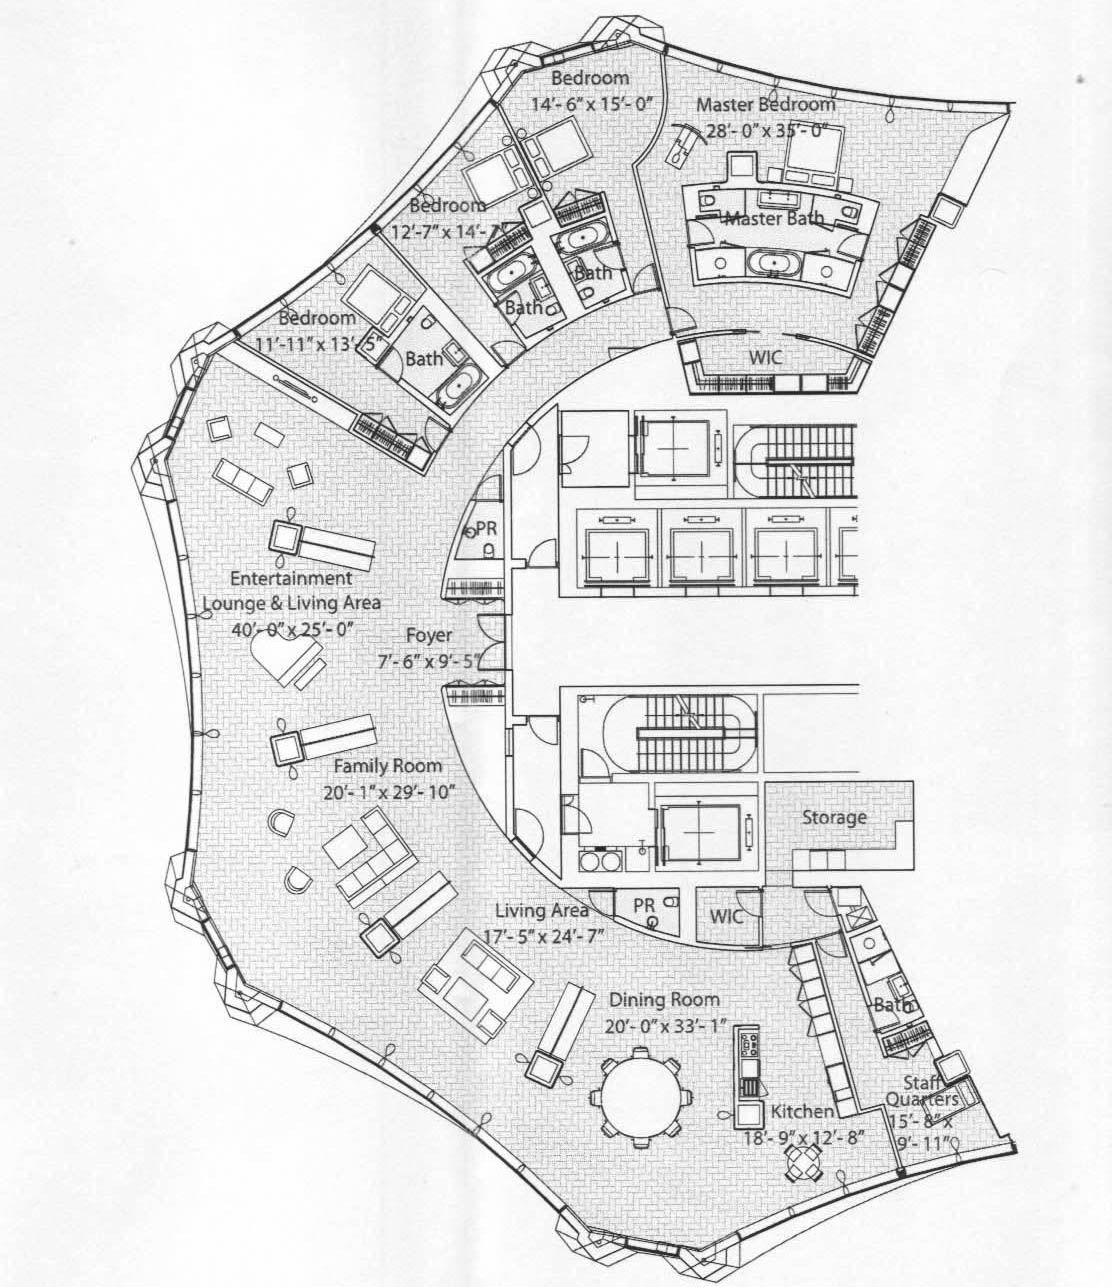 Luxury Dome Home Plans: Penthouses In Chicago Floor Plans